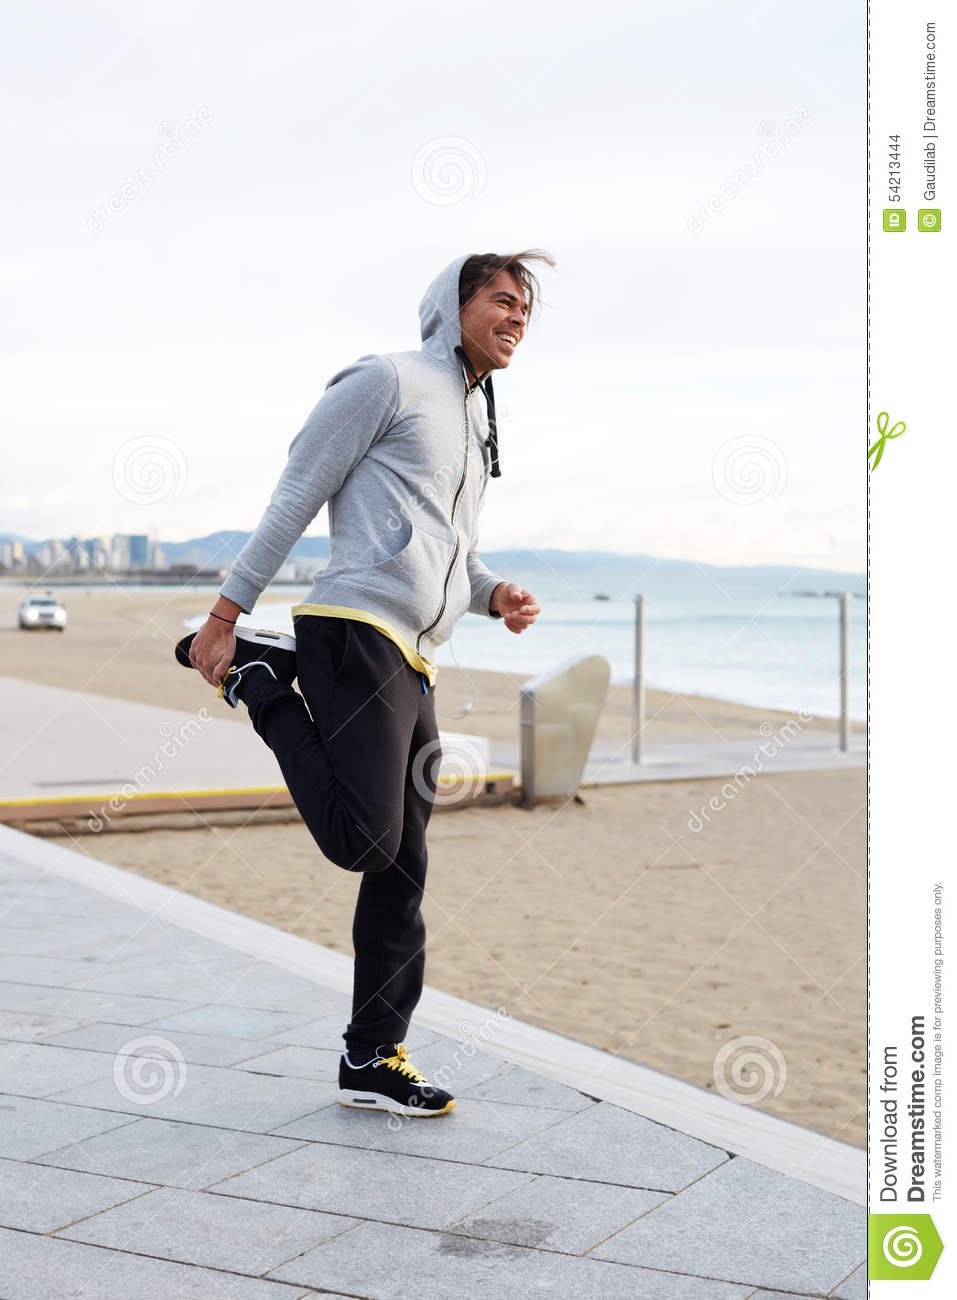 Young male athlete warming up after an intense running on the beach